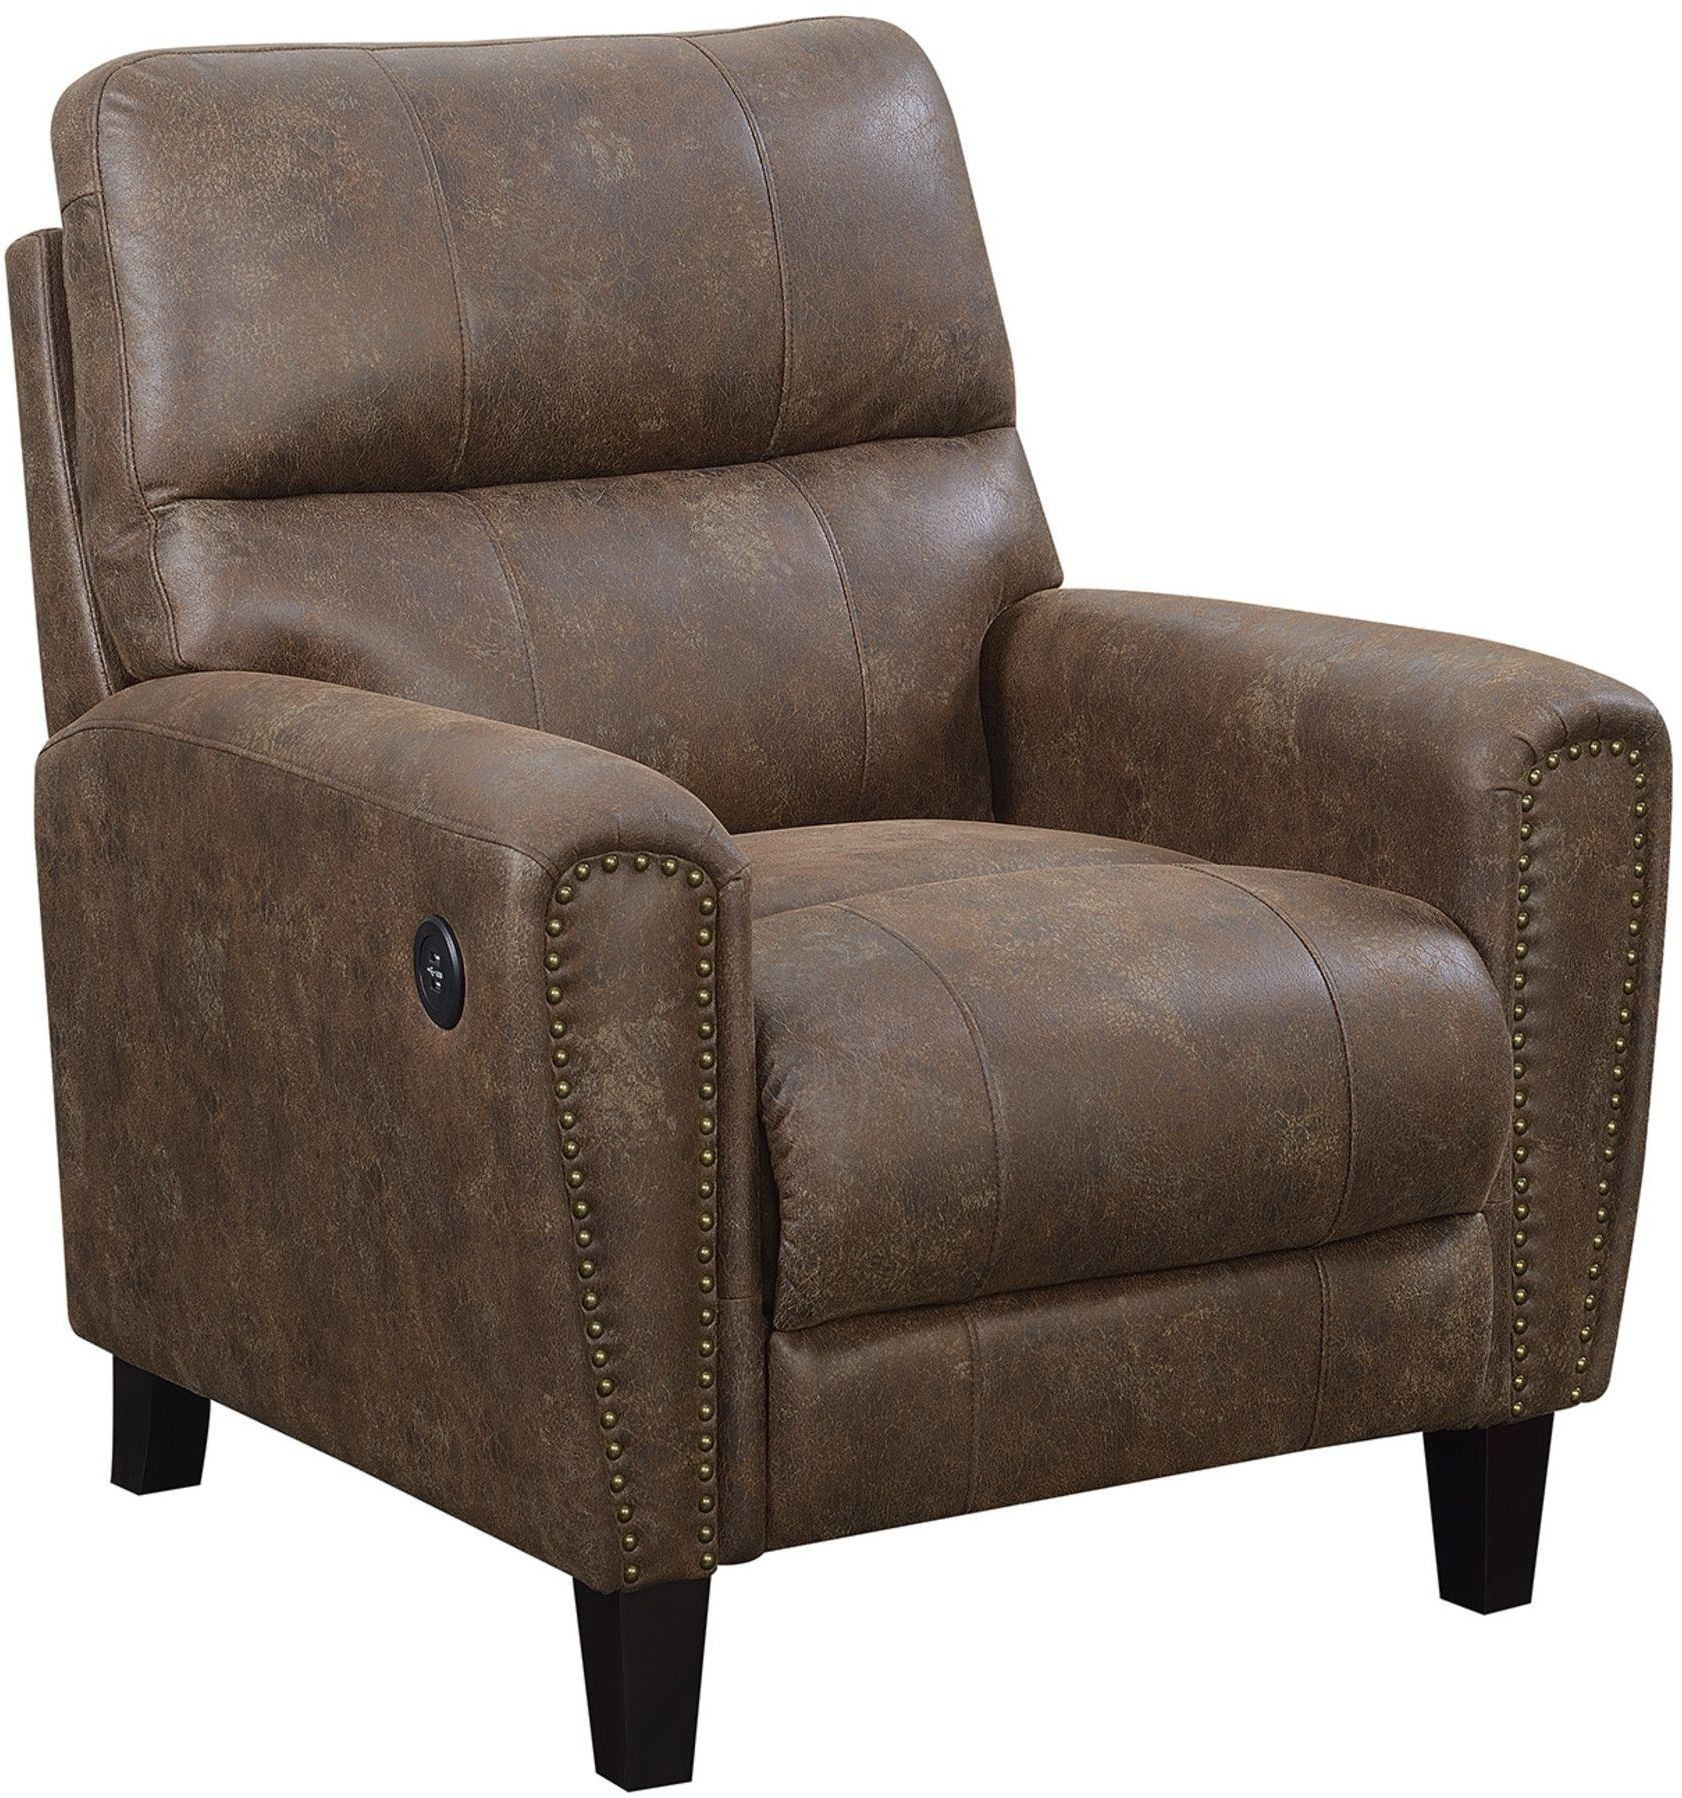 push back chair covers to hire dover sanded microfiber from emerald home coleman 2305920